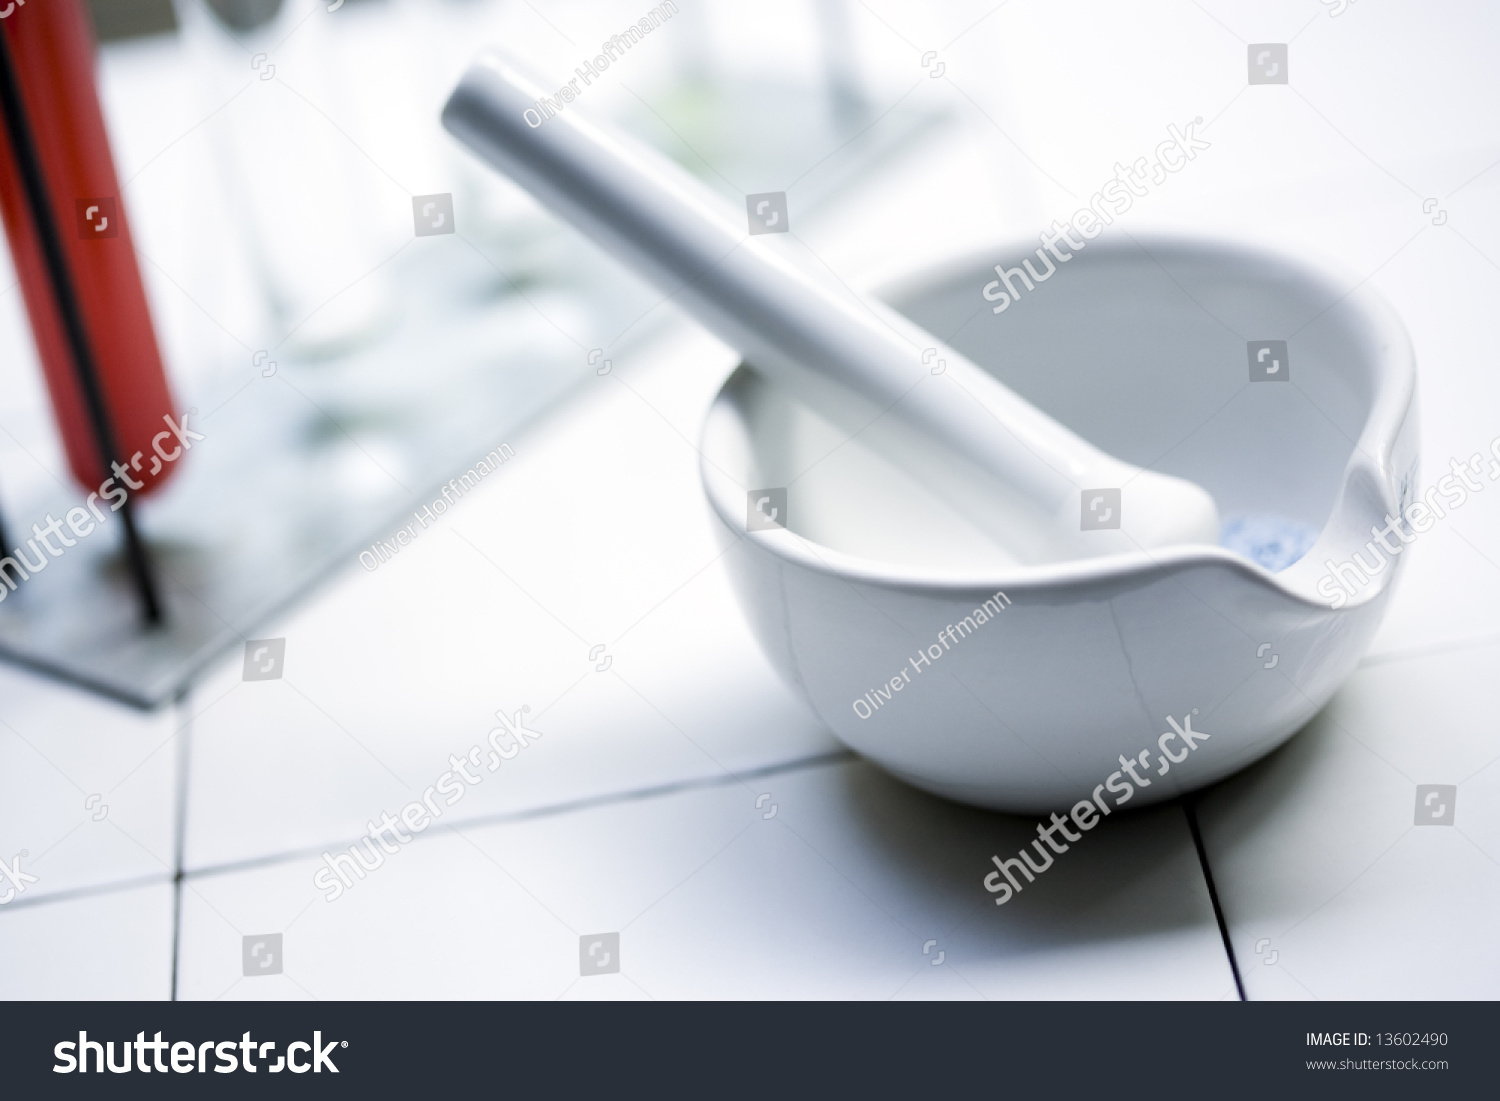 Chemical Laboratory Utensils Background Mortar Pestle Stock Photo ... for Laboratory Mortar And Pestle  174mzq